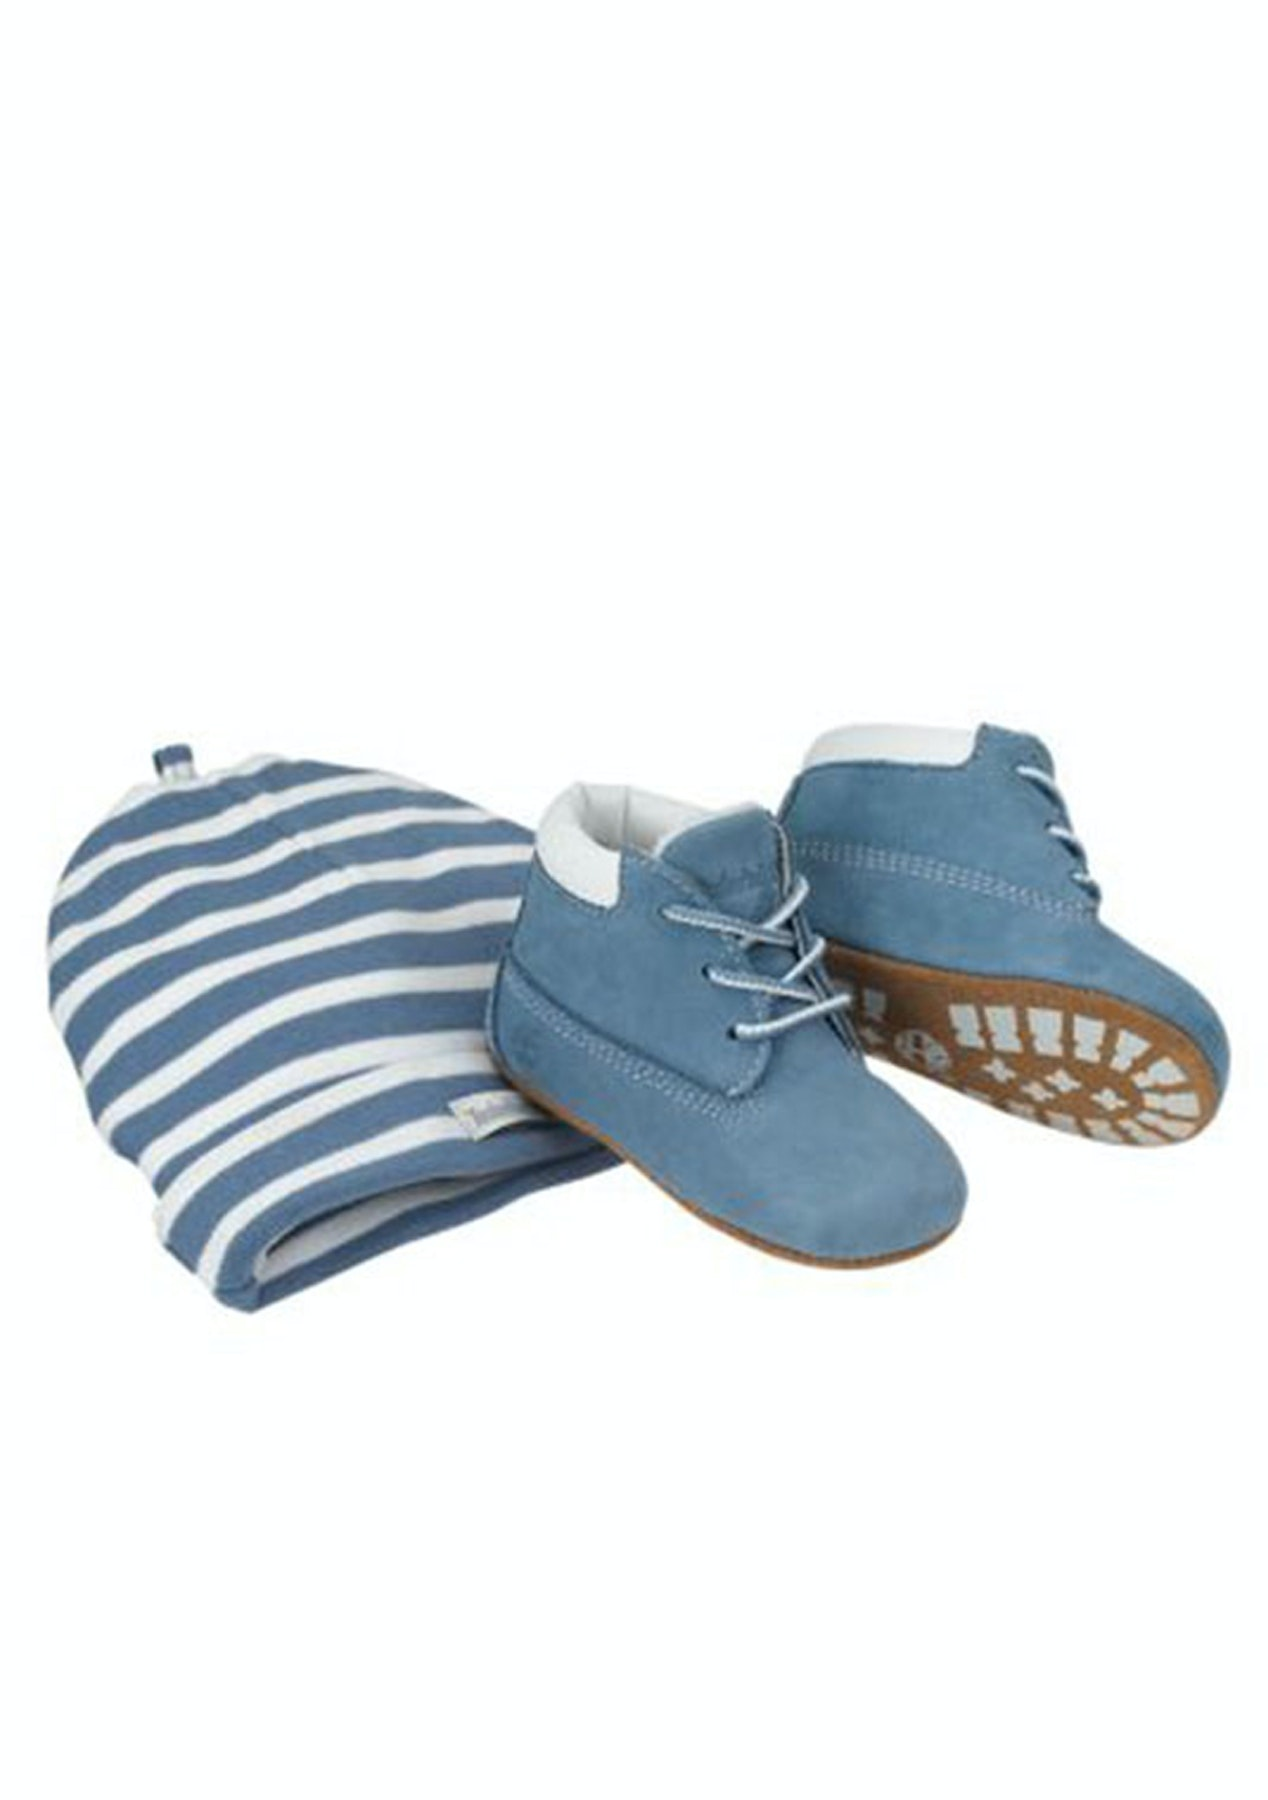 2e934152d9bd Timberland Kids - Crib Bootie With Hat - Blue - Timberland - Onceit